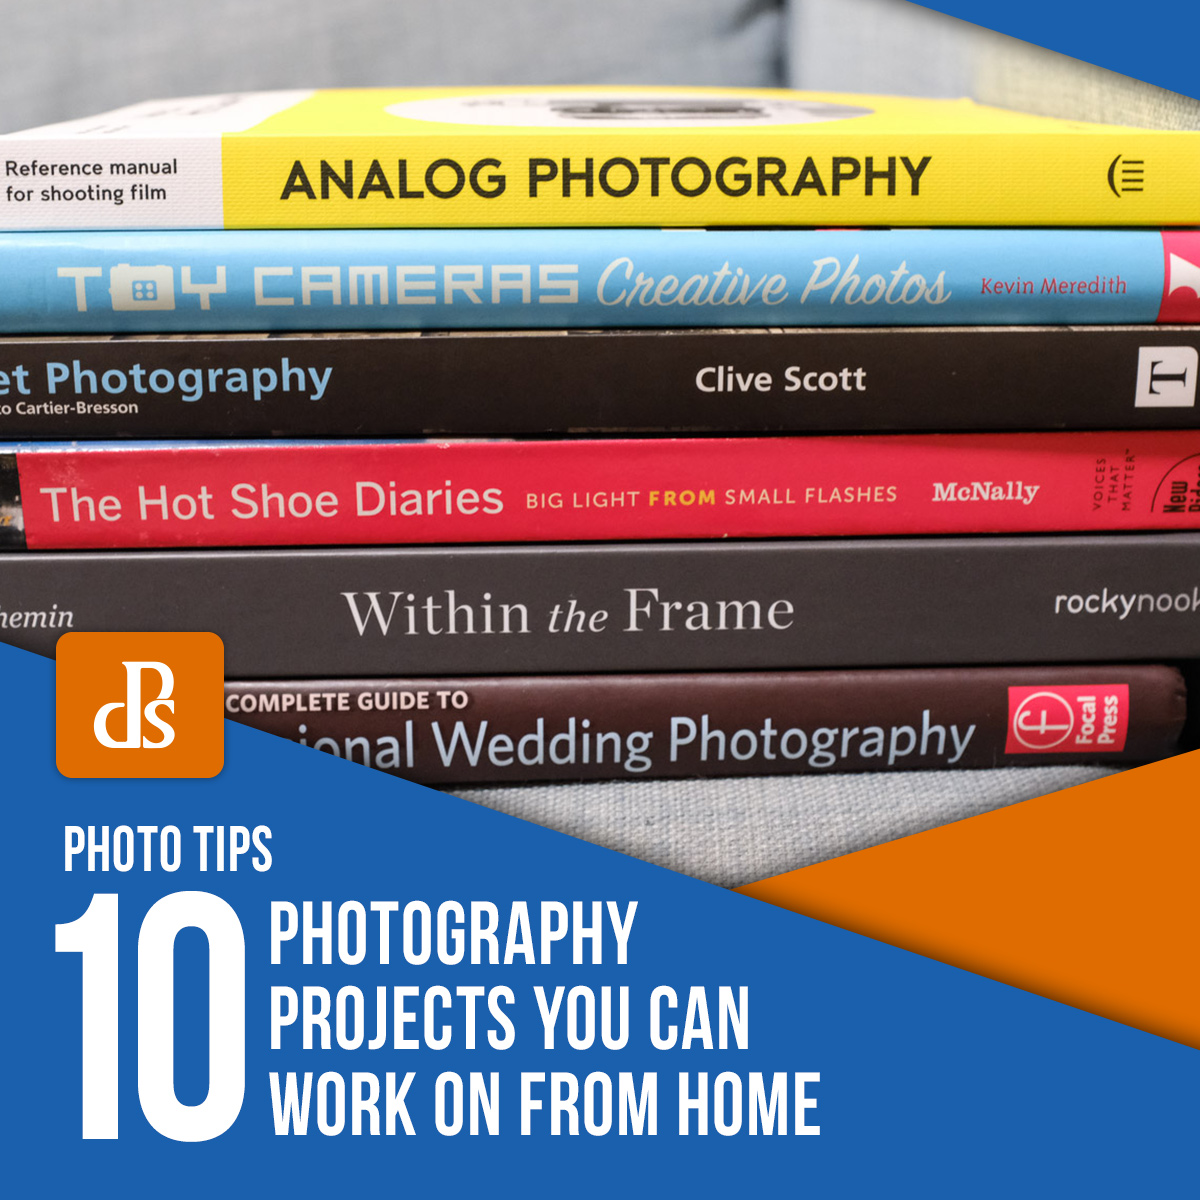 photography-projects-you-can-work-on-from-home